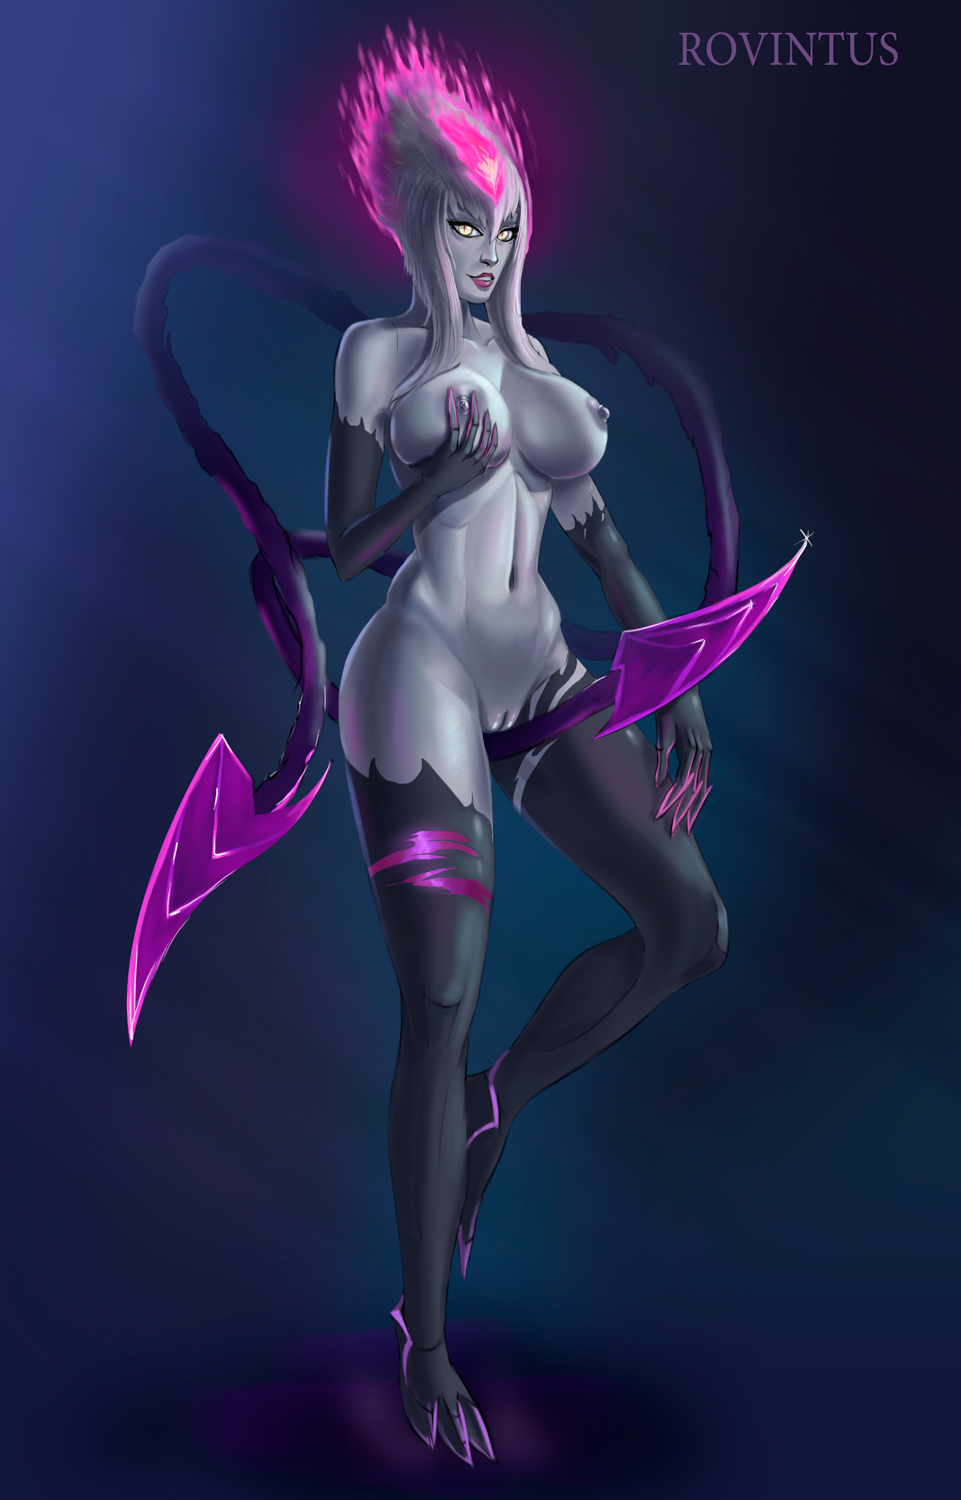 2638675 - Evelynn League_of_Legends rovintus